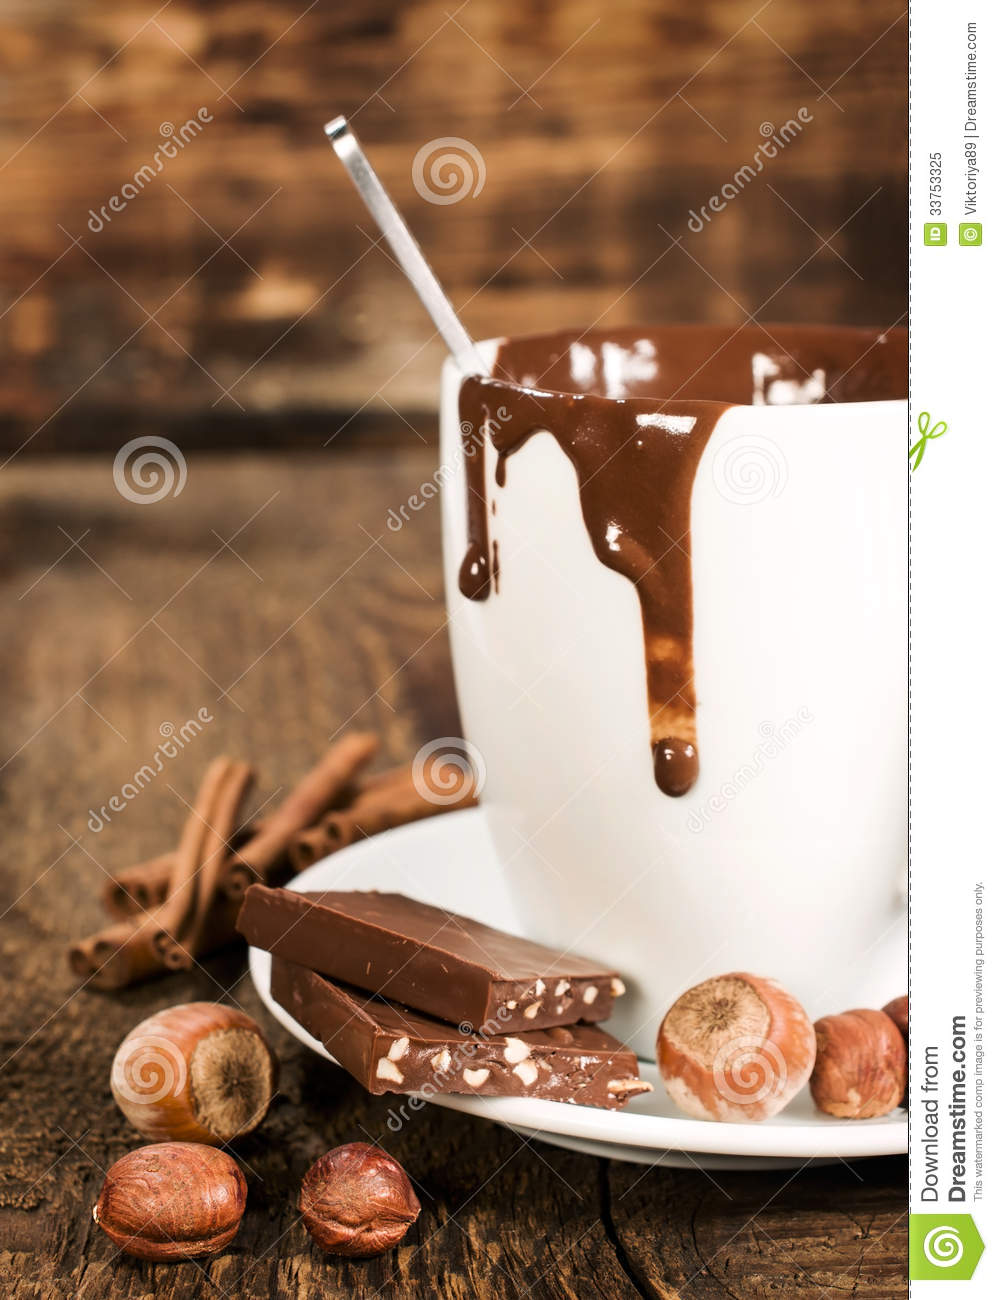 Cup Of Hot Chocolate With Nuts And Cinnamon Close-up Royalty Free ...